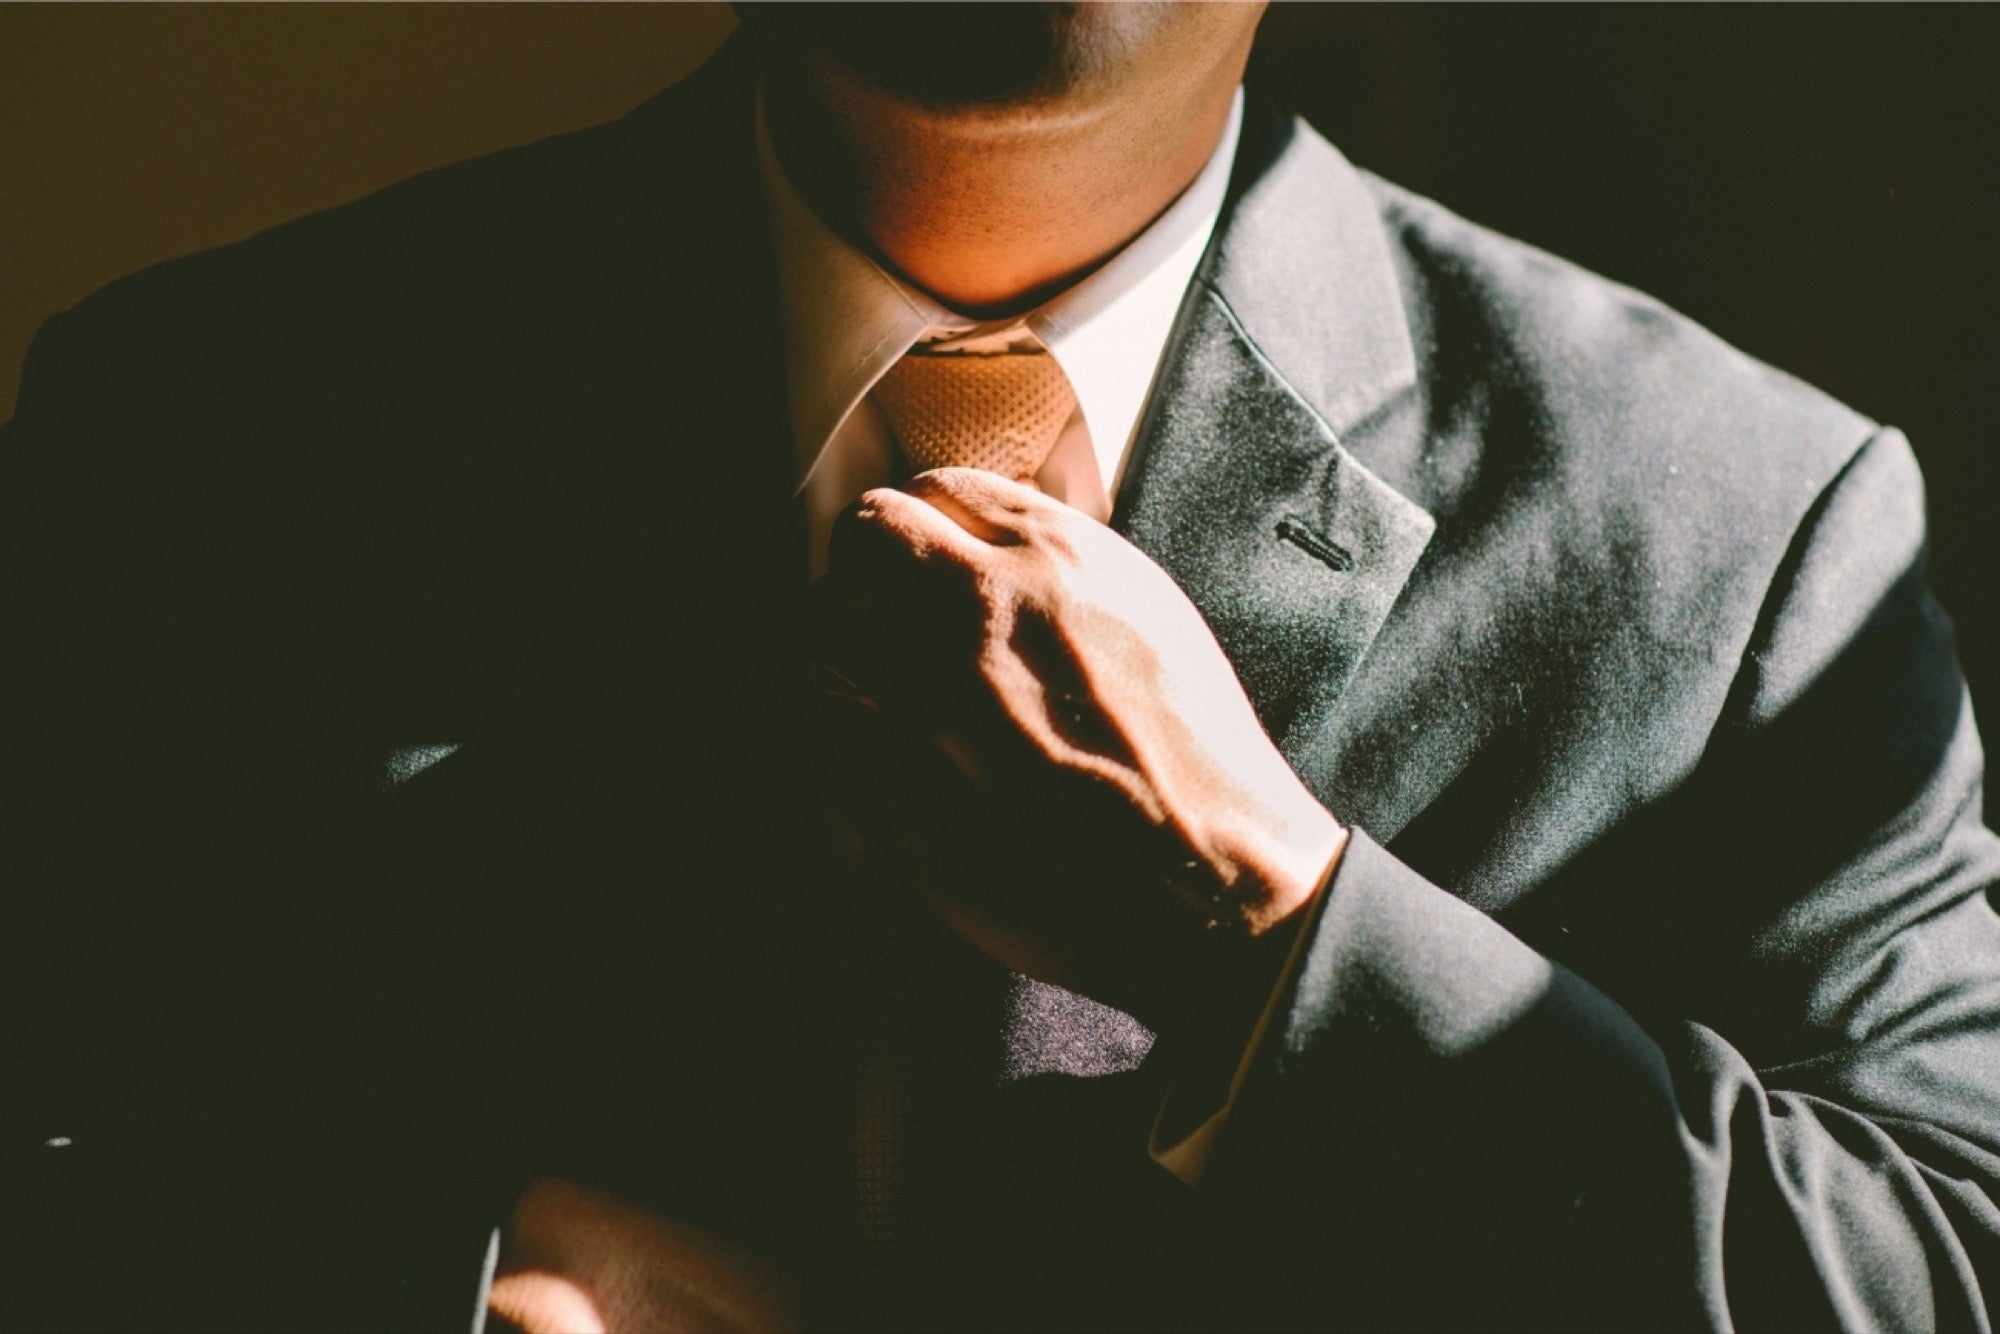 7 Things That Can Make You Look Like A Successful Entrepreneur